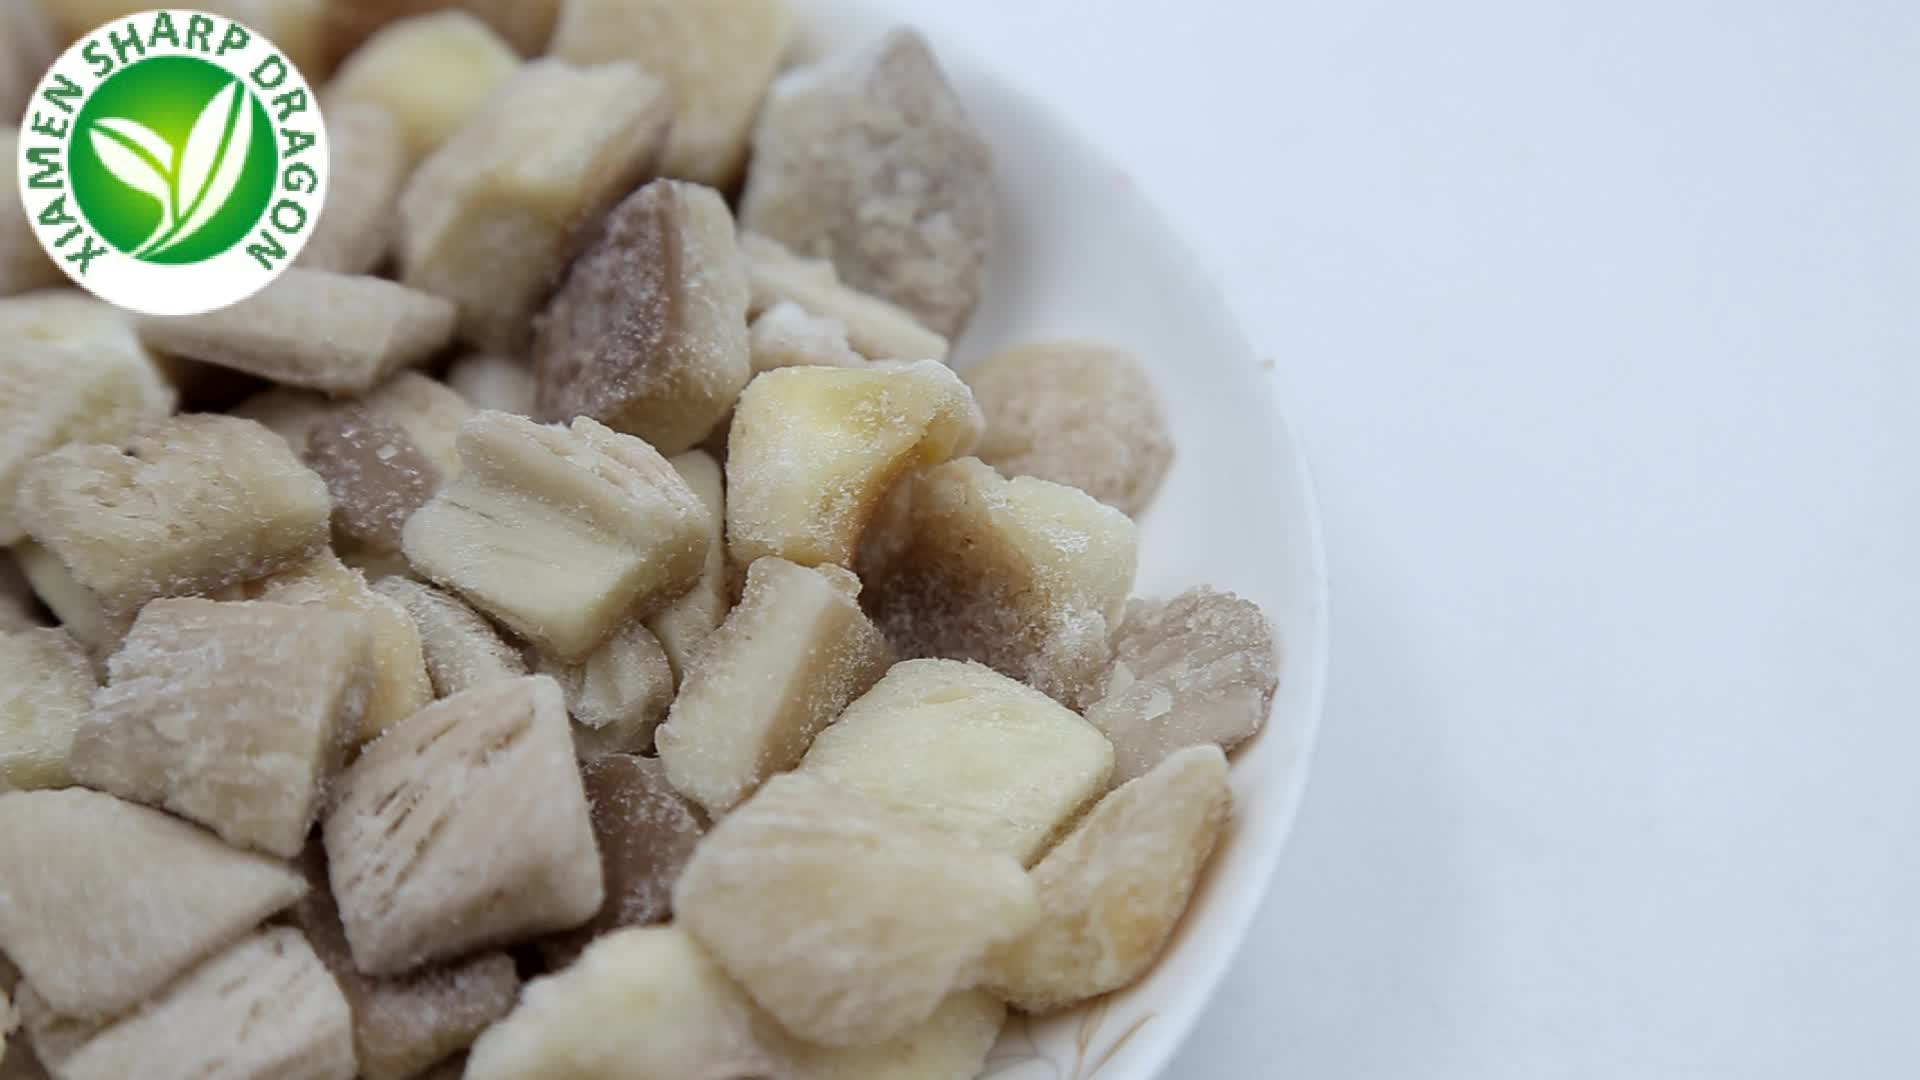 Buyer raw frozen king oyster mushroom of 1kg price